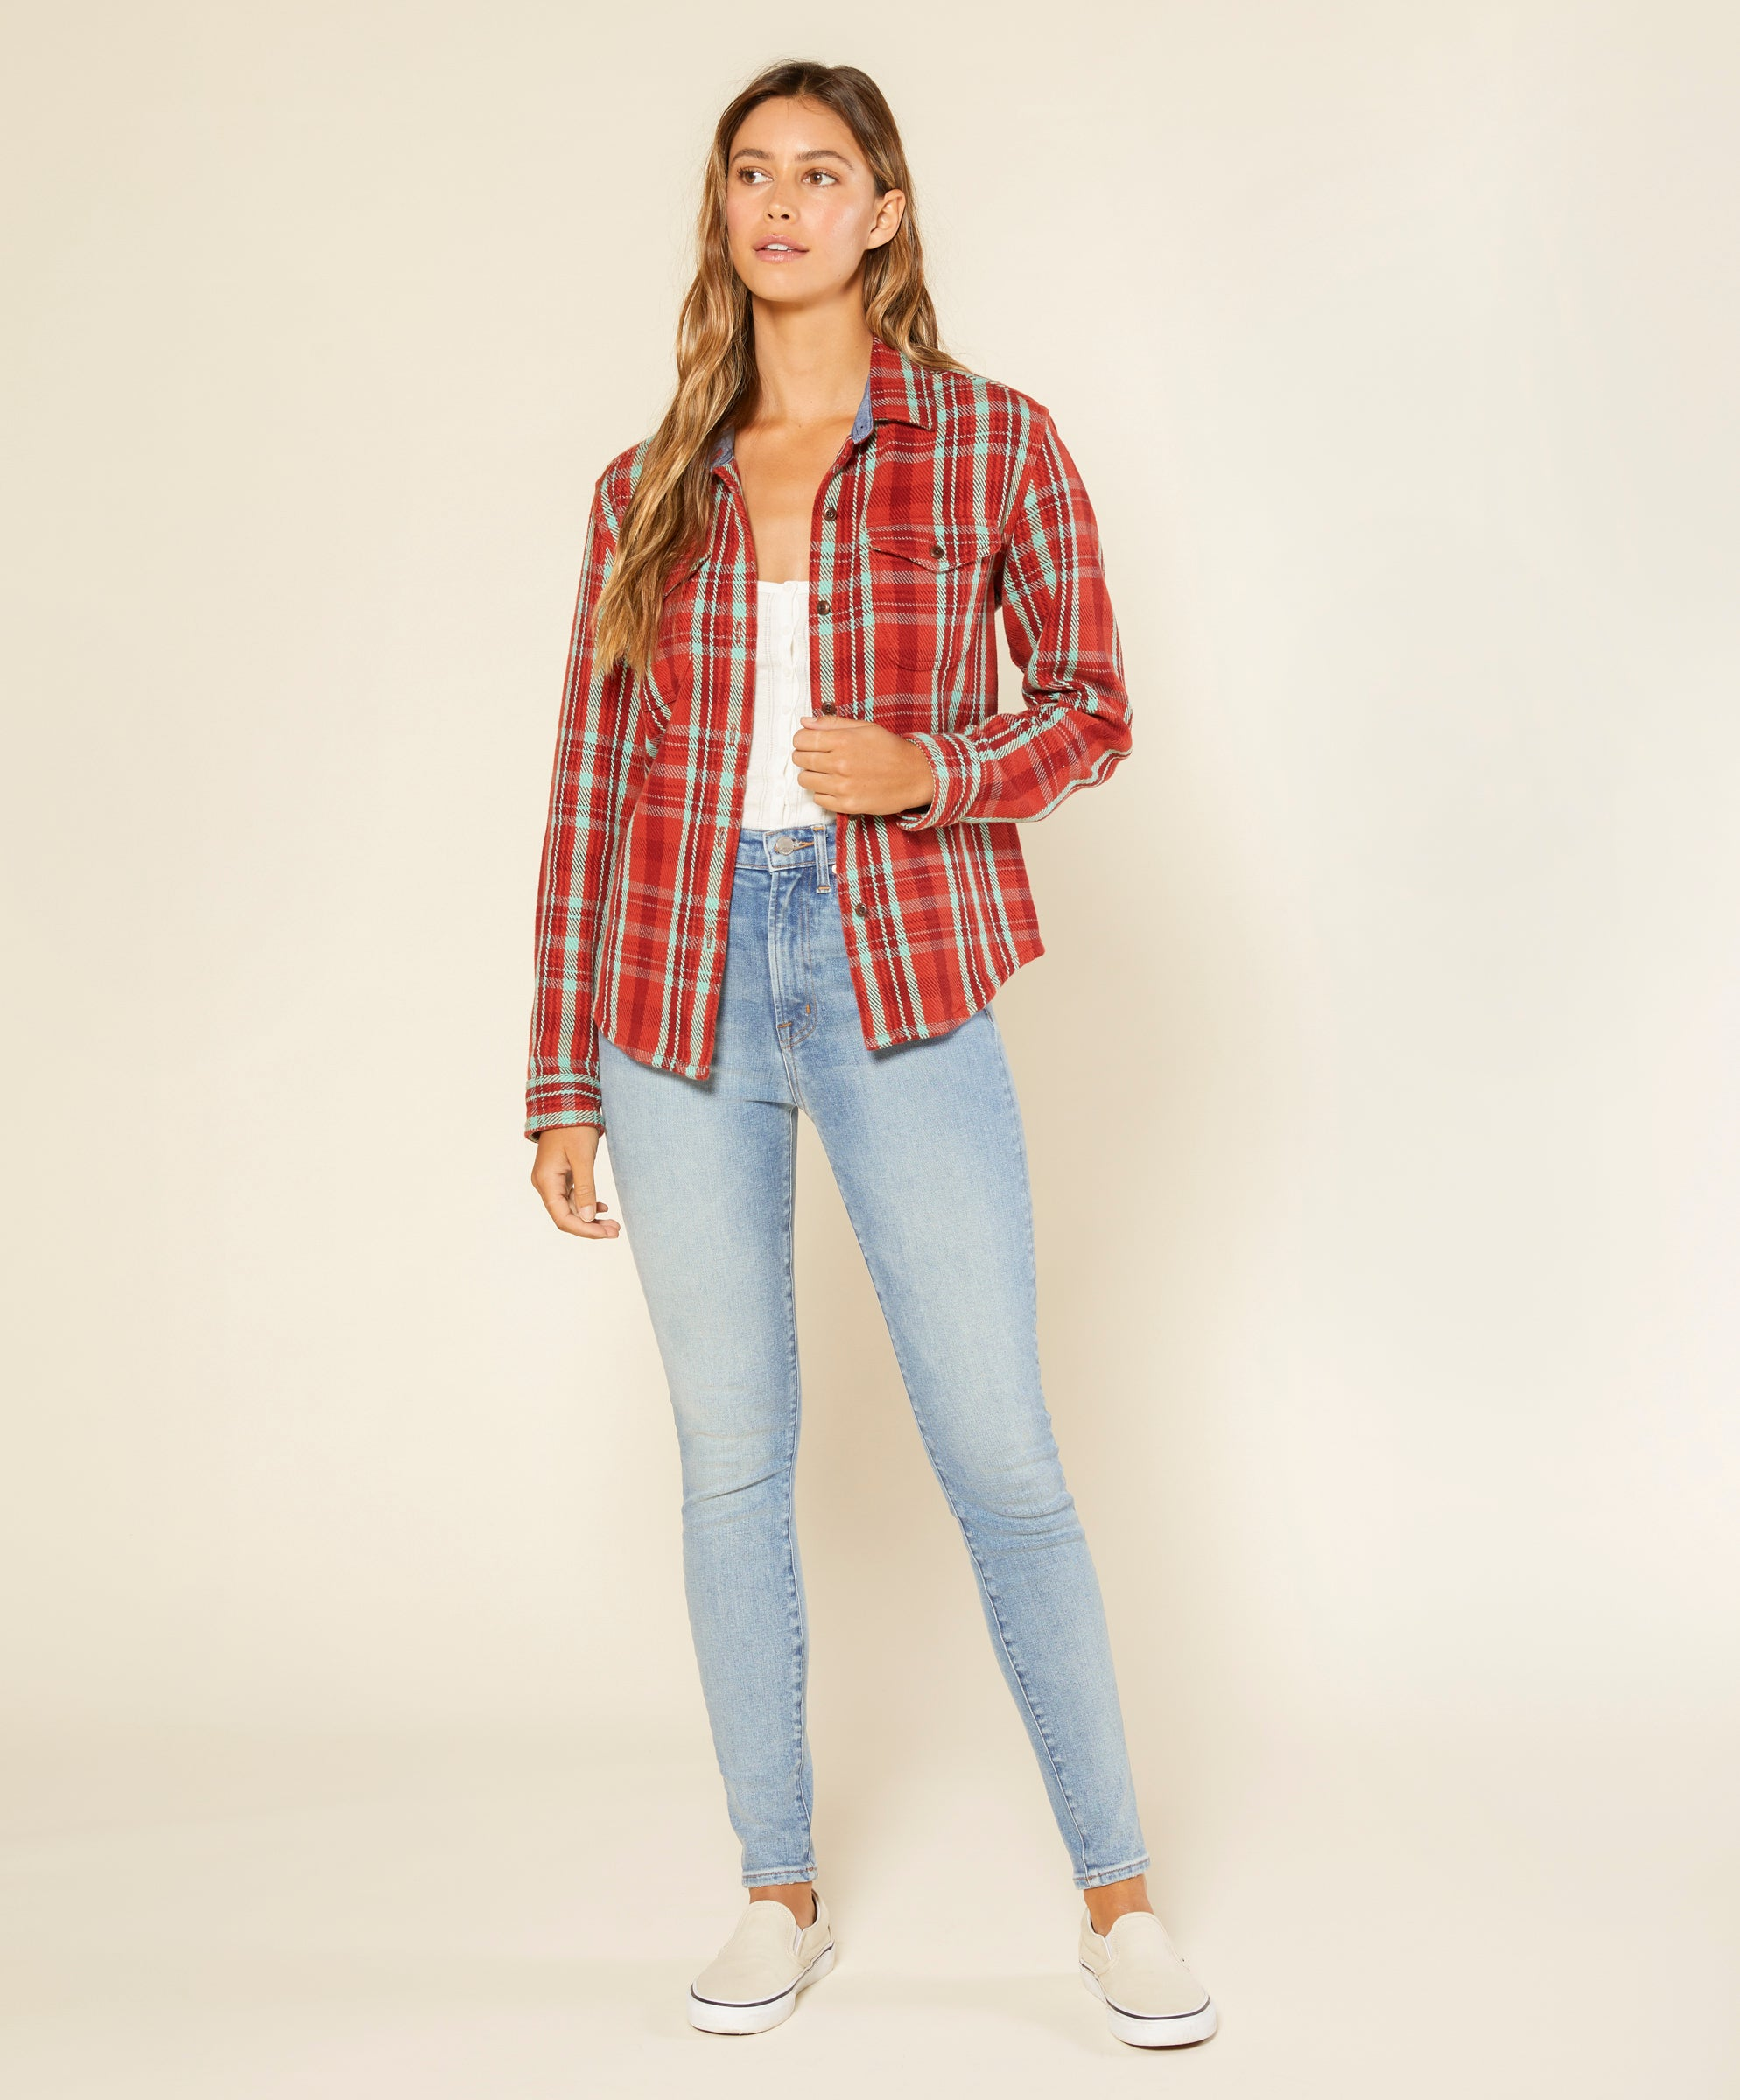 What are the best vegan clothing brands?